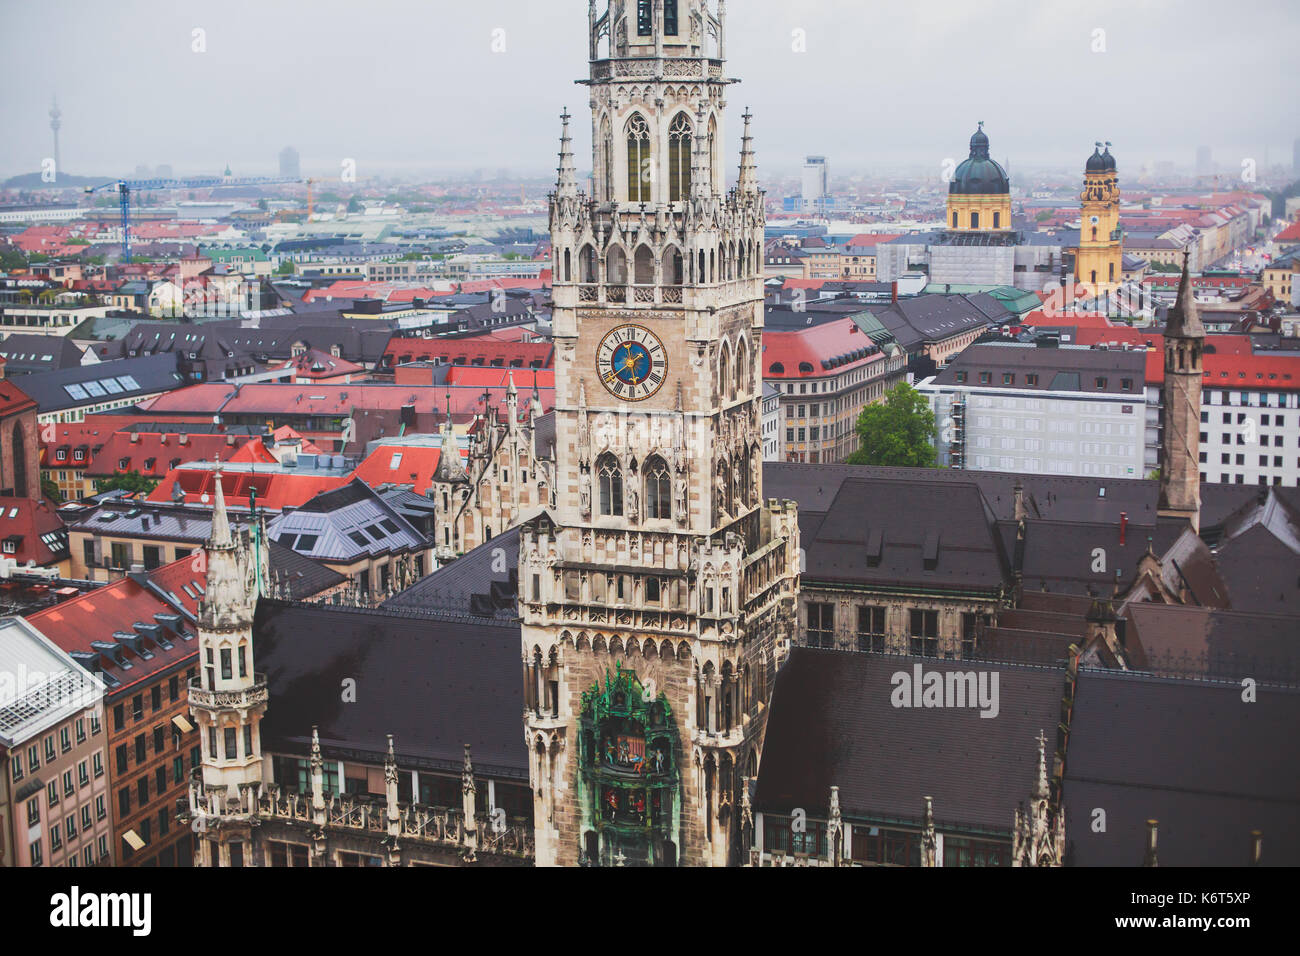 Beautiful super wide-angle sunny aerial view of Munich, Bayern, Bavaria, Germany with skyline and scenery beyond the city, seen from the observation d - Stock Image